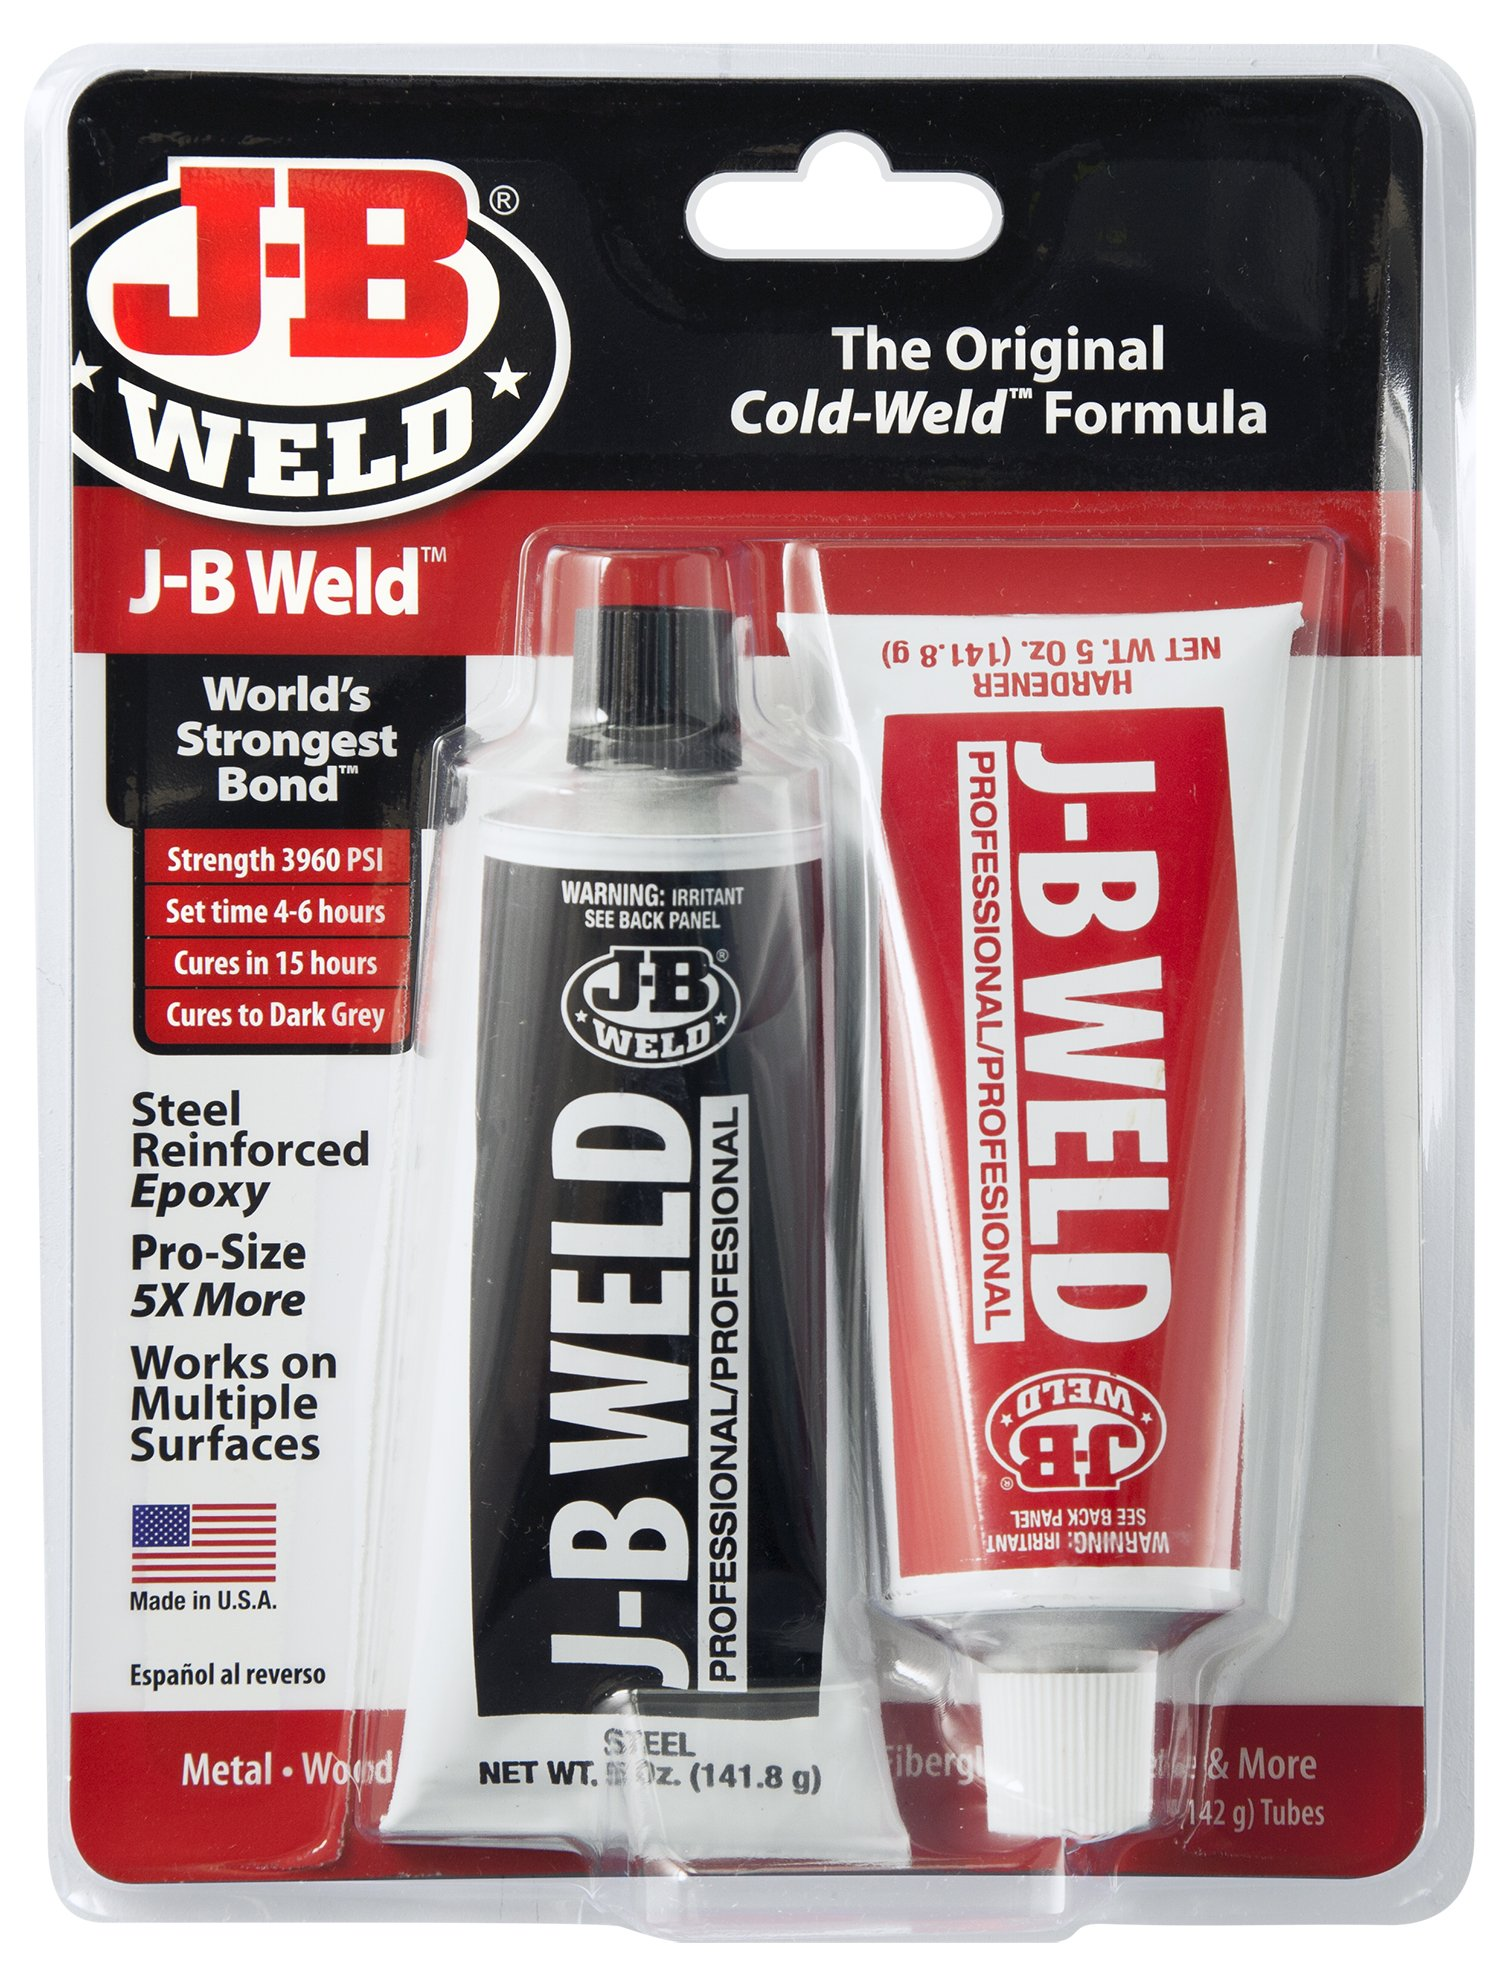 J-B Weld 8281 Professional Size Steel Reinforced Epoxy Twin Pack - 10 oz. product image